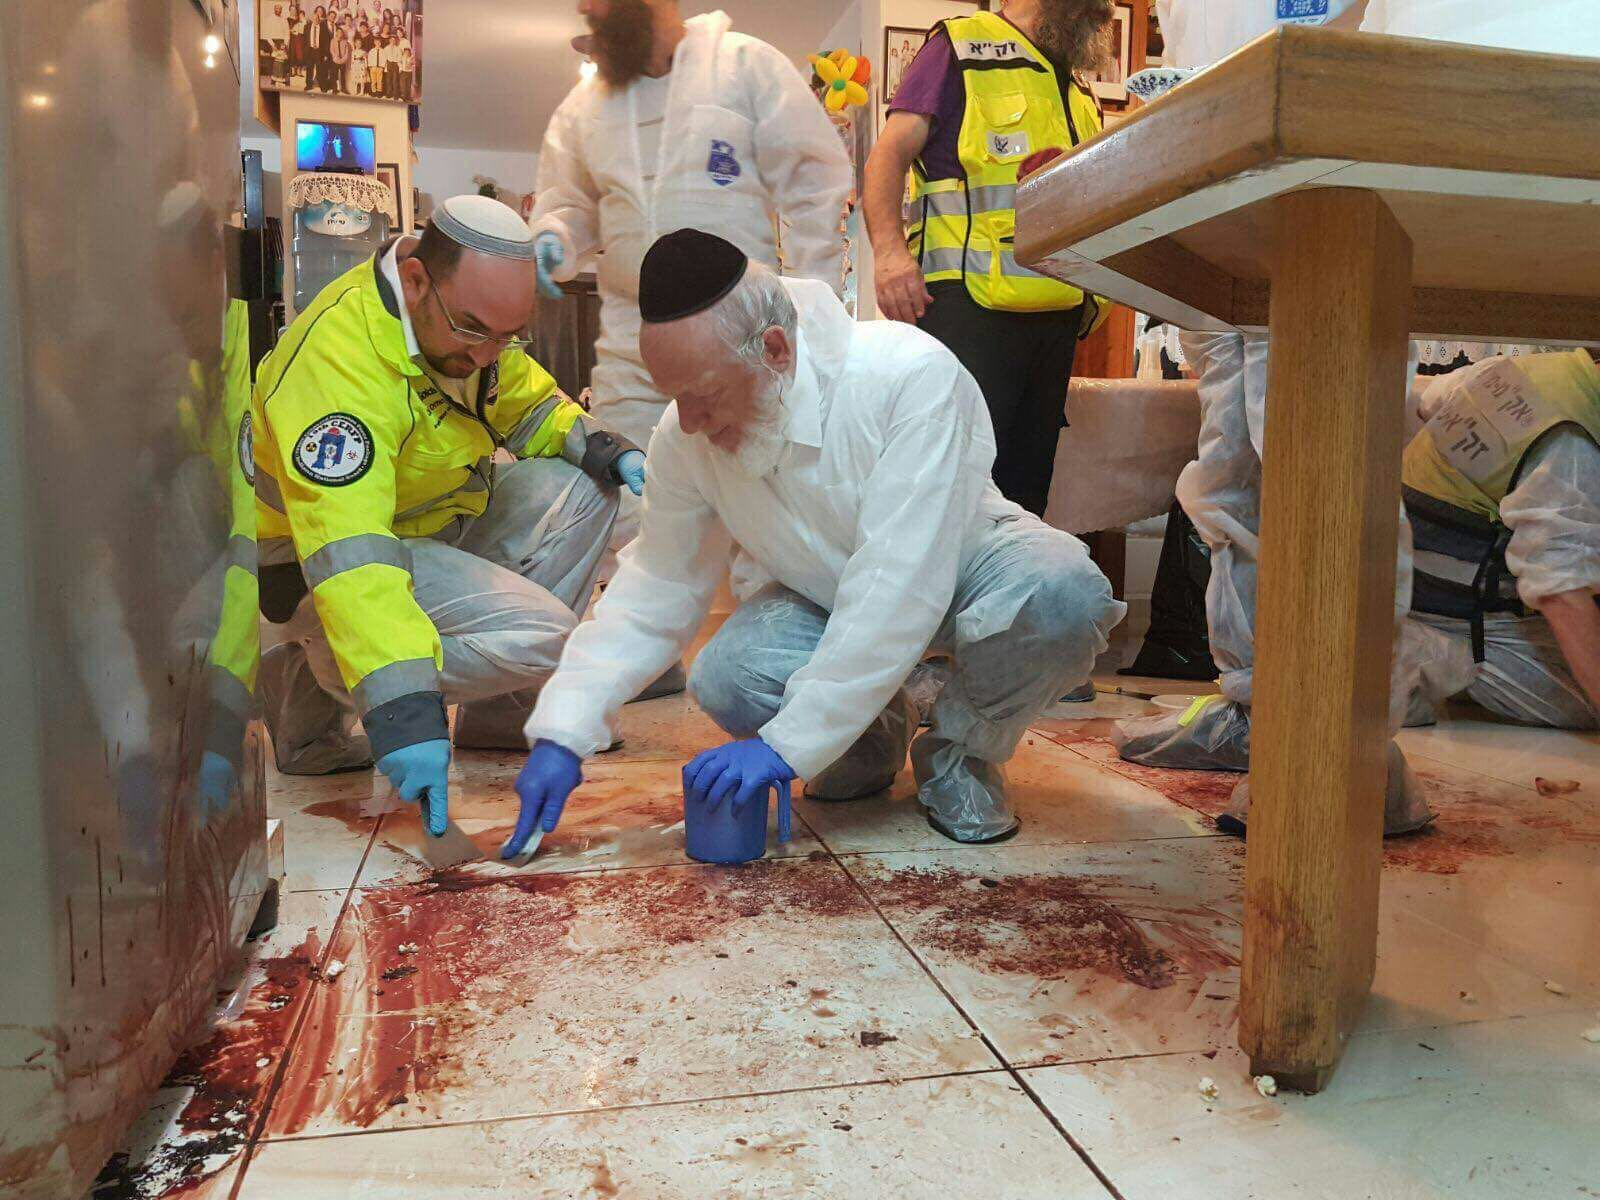 Friday Night Slaughter: Father And Two Of His Children Murdered In Chalamish